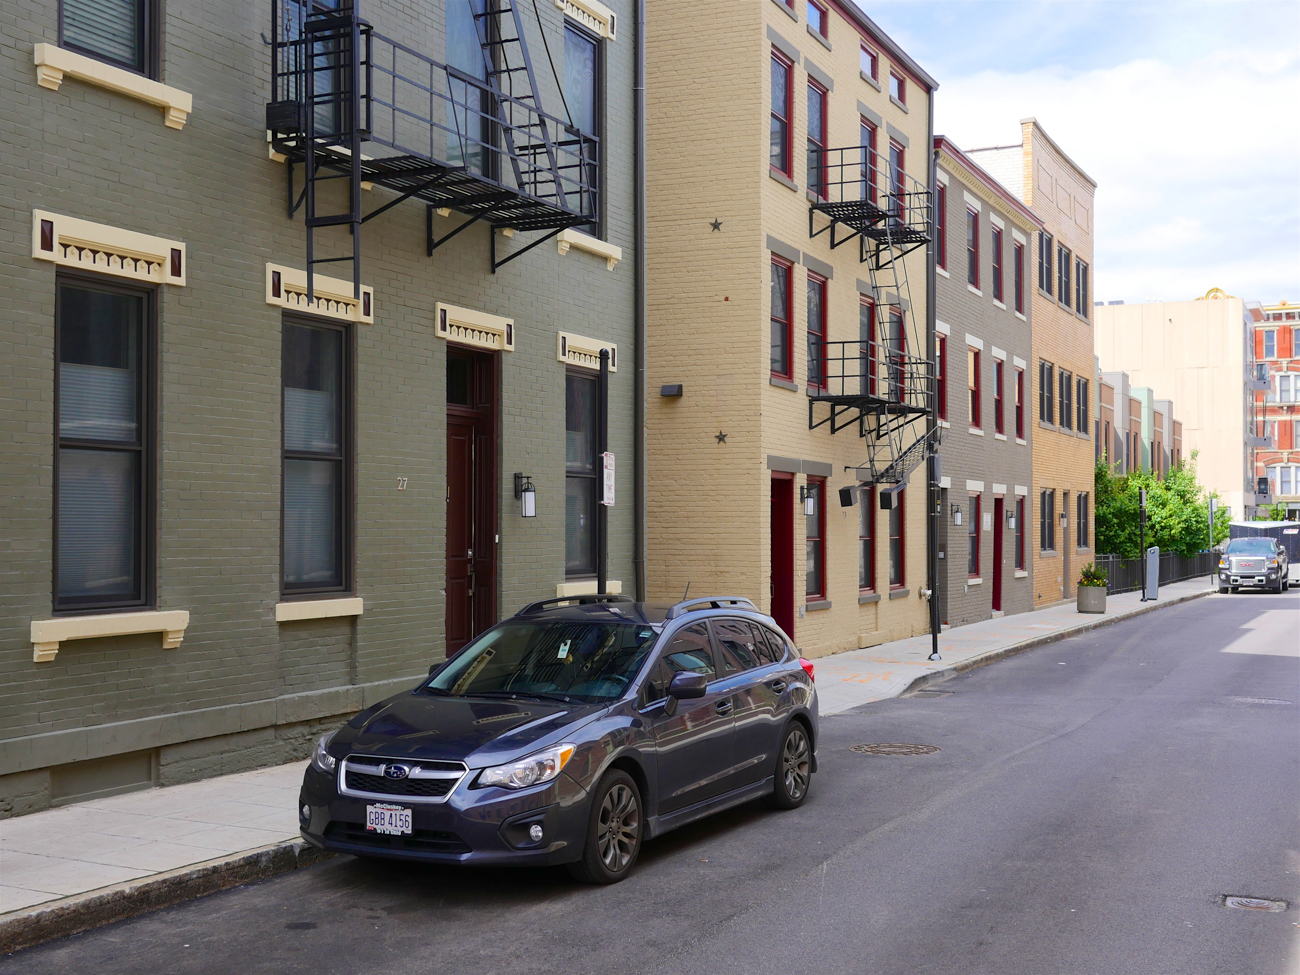 [AFTER] LOCATION: Mercer Street, looking west between Vine and Walnut Streets at Rodney Alley (Over-the-Rhine) / IMAGE: Travis Estell